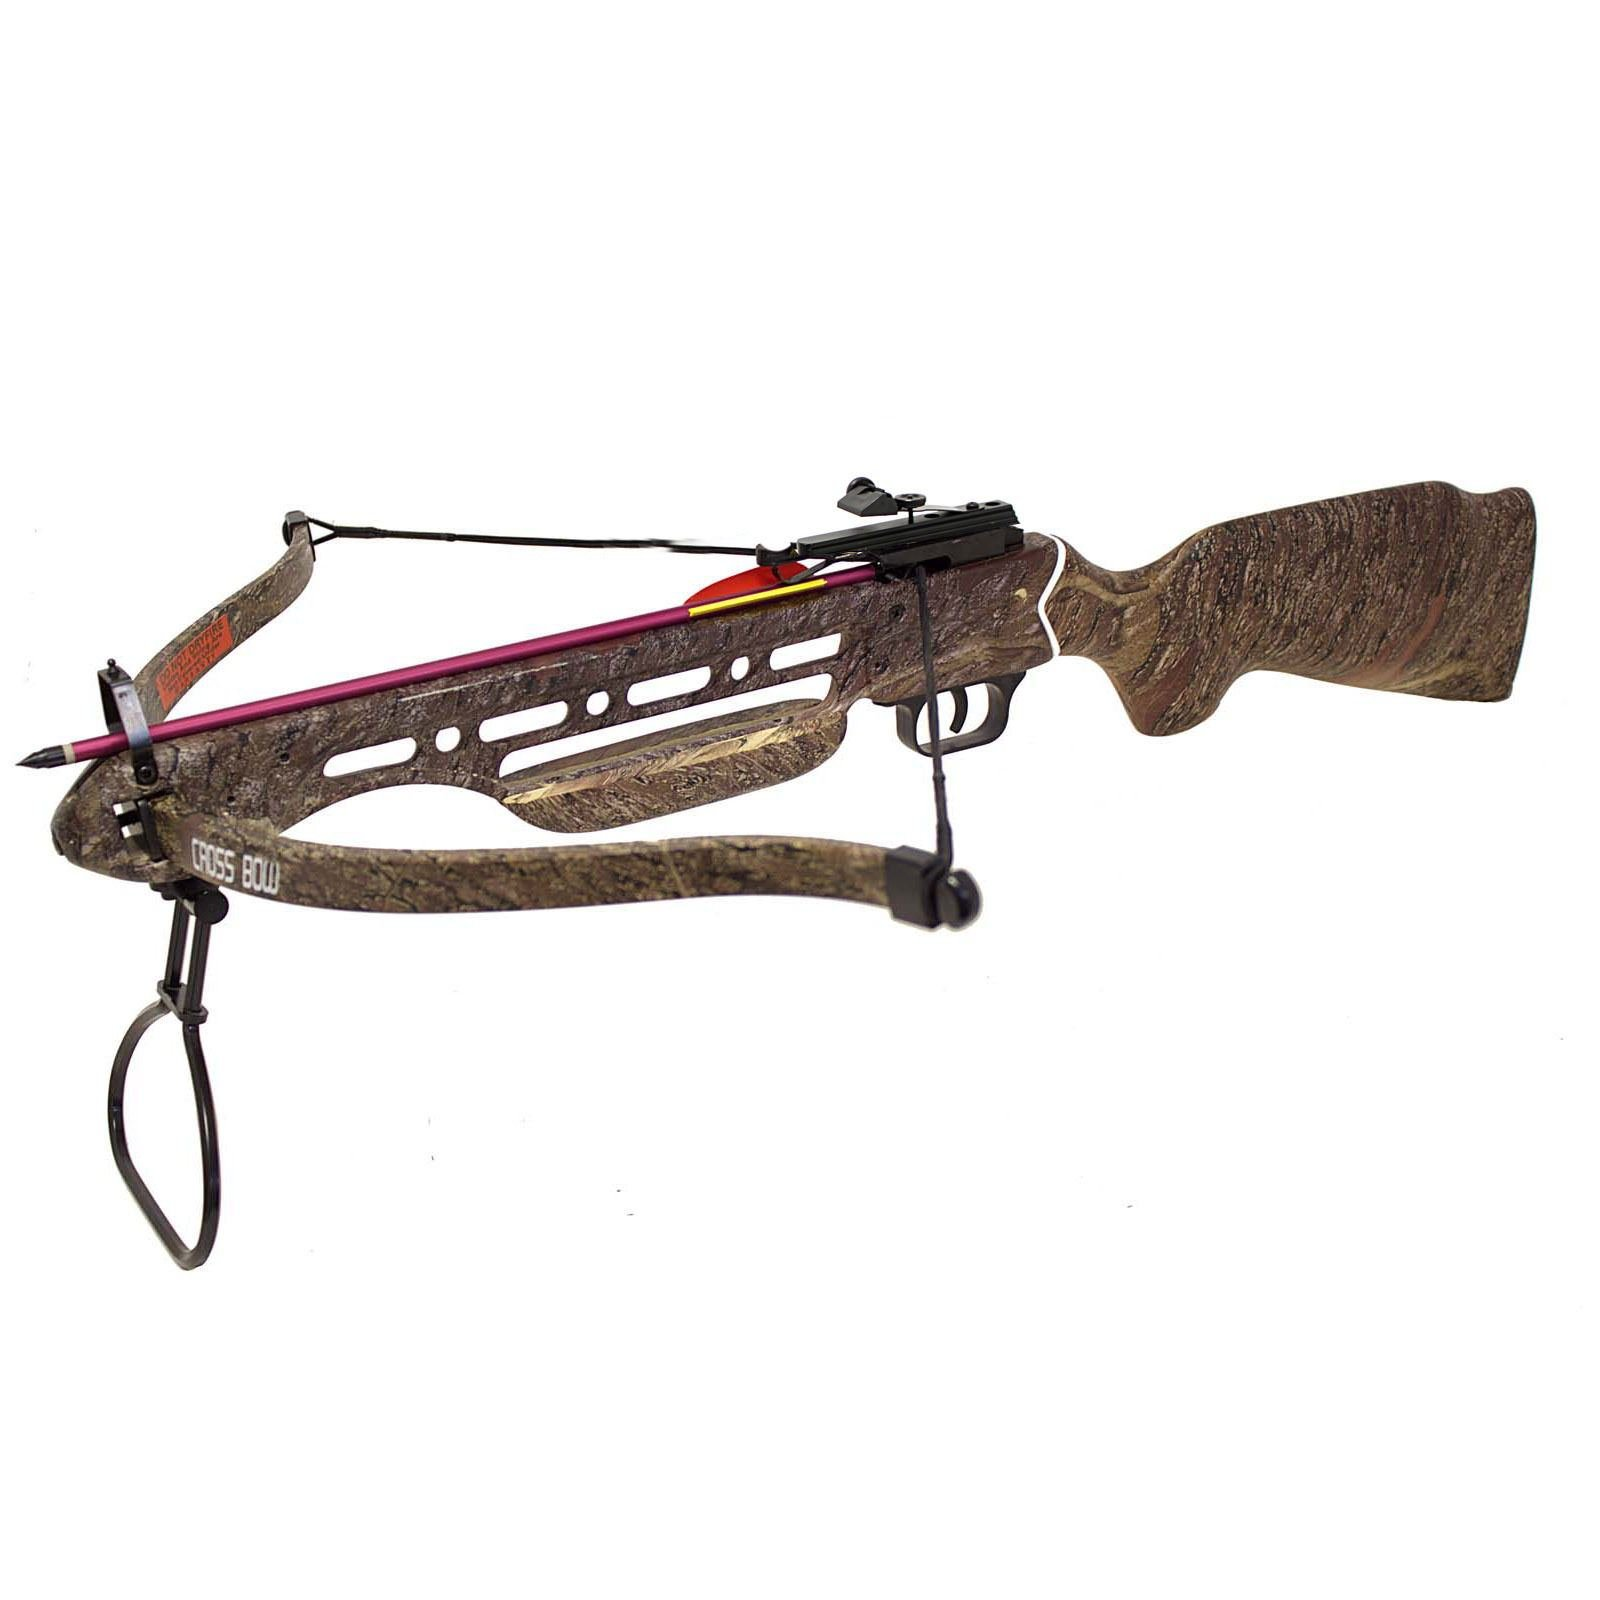 Hunting Crossbows 150 lbs Real Wooden Camouflage Hunting Crossbow with 2 Arrows Deer Hunting Crossbow Bolts